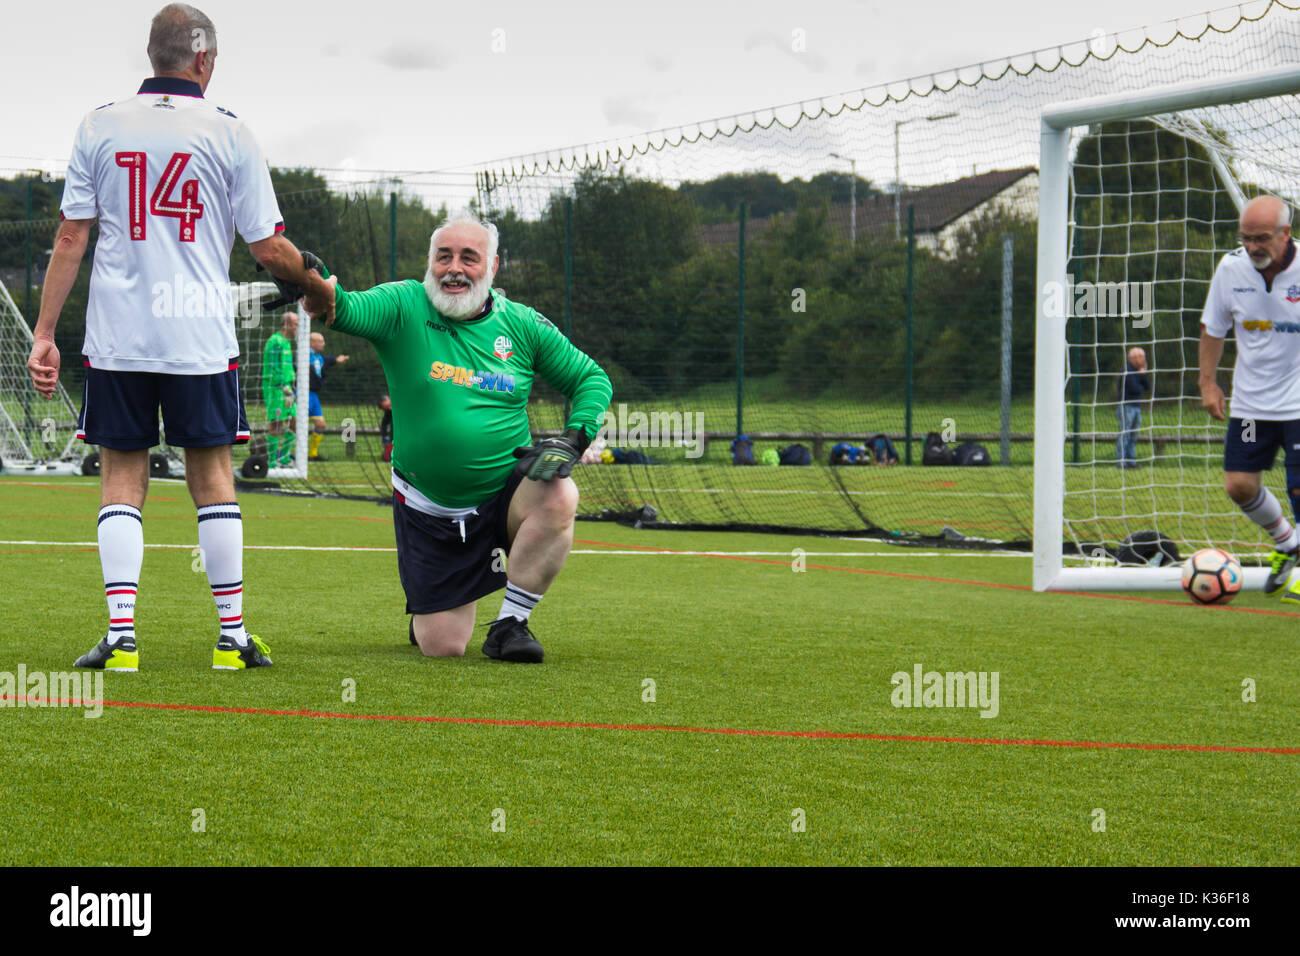 Heywood, Greater Manchester, UK. 1st September 2017. Today saw the kick-off of the second season for the Greater Manchester Over 60s Walking Football league at Heywood Sports Centre. The Bolton Wanderers B goalie receives a welcome helping hand to his feet as the defender fishes the fourth goal scored by Wakefield Wanderers out of the back of the net. Walking Football is one of the fastest growing areas of organised football in the UK, aimed at increasing health and fitness through physical activity in the over 50s, encouraged by football clubs, health professionals and Football Association. - Stock Image